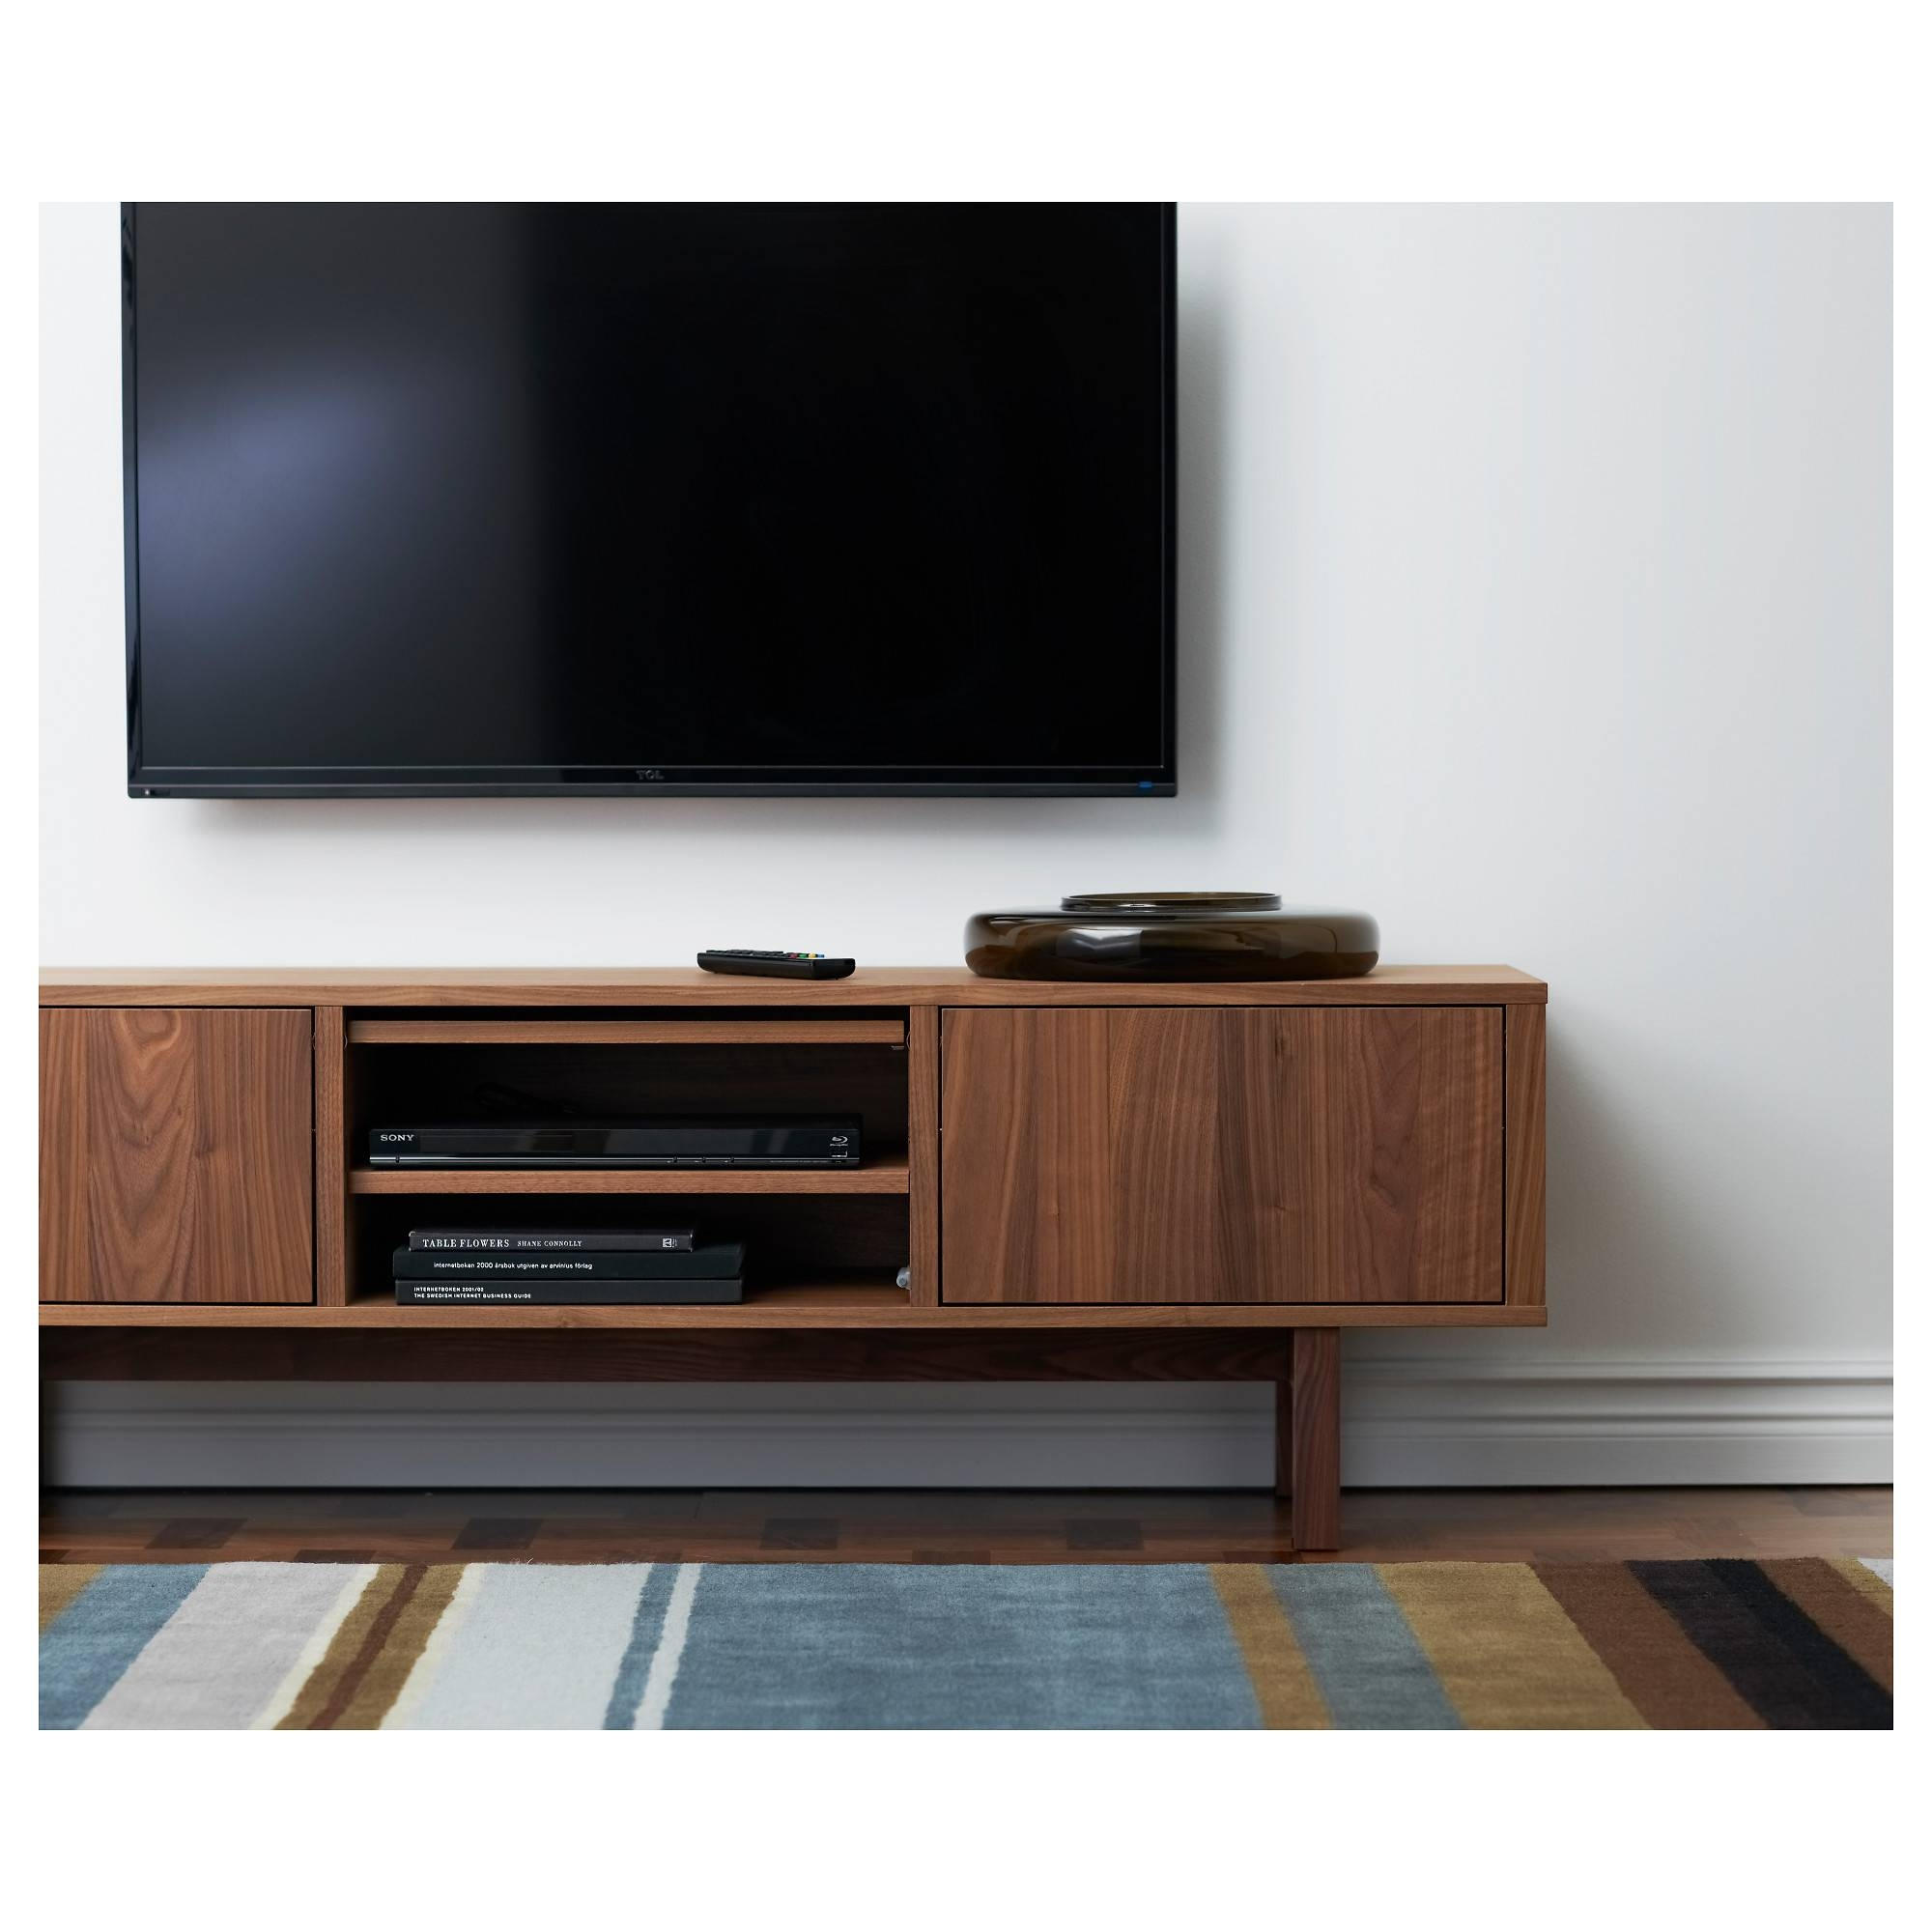 Stockholm Tv Unit - Ikea pertaining to Walnut Tv Cabinets With Doors (Image 10 of 15)